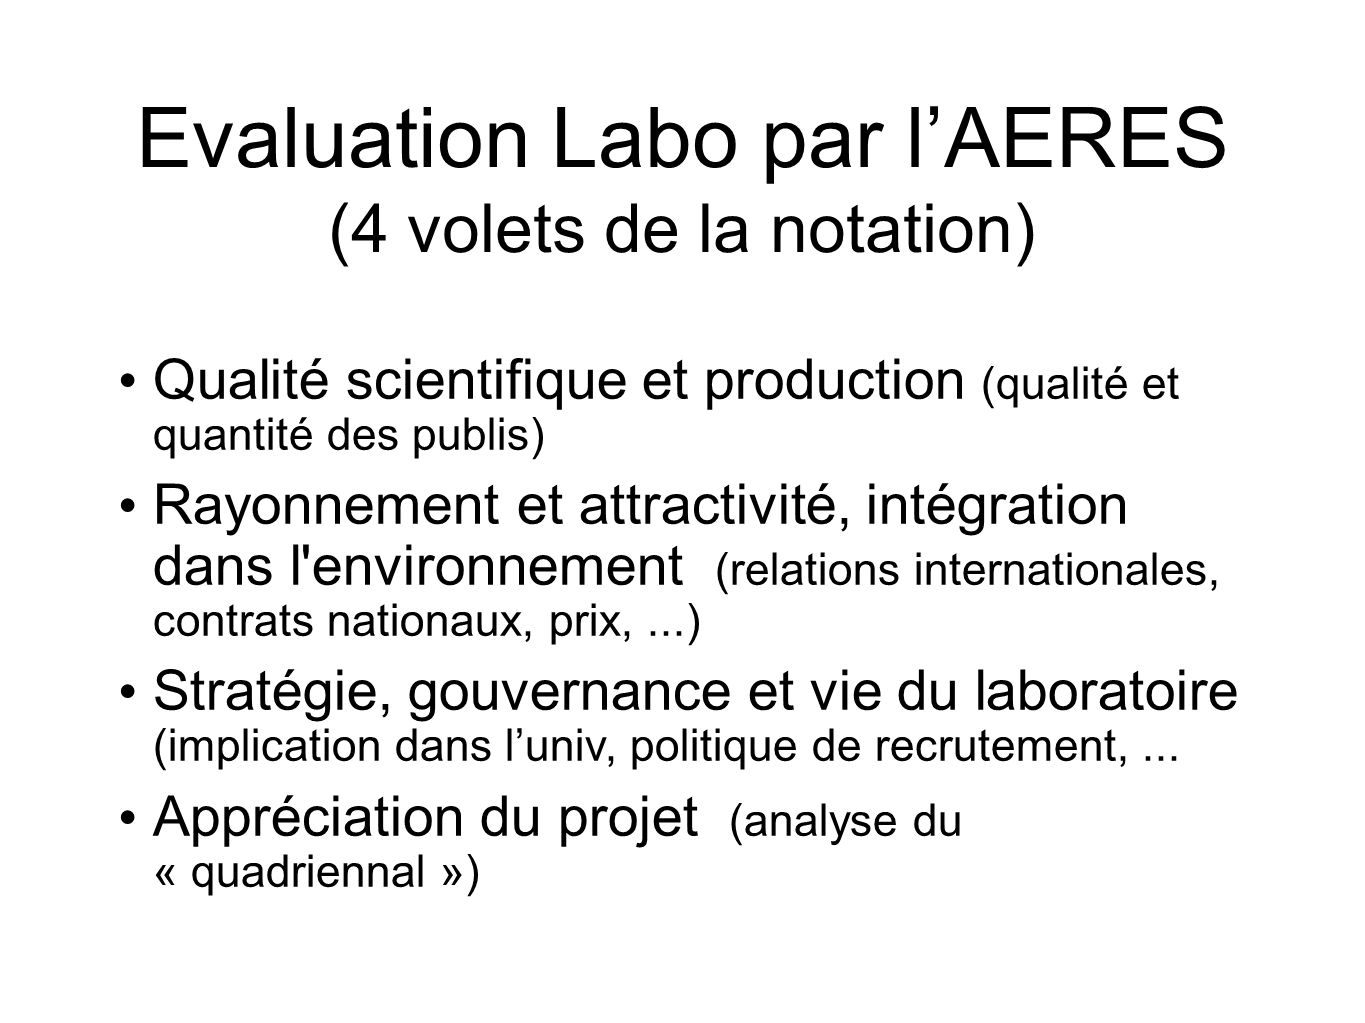 Evaluation Labo par l'AERES (4 volets de la notation)